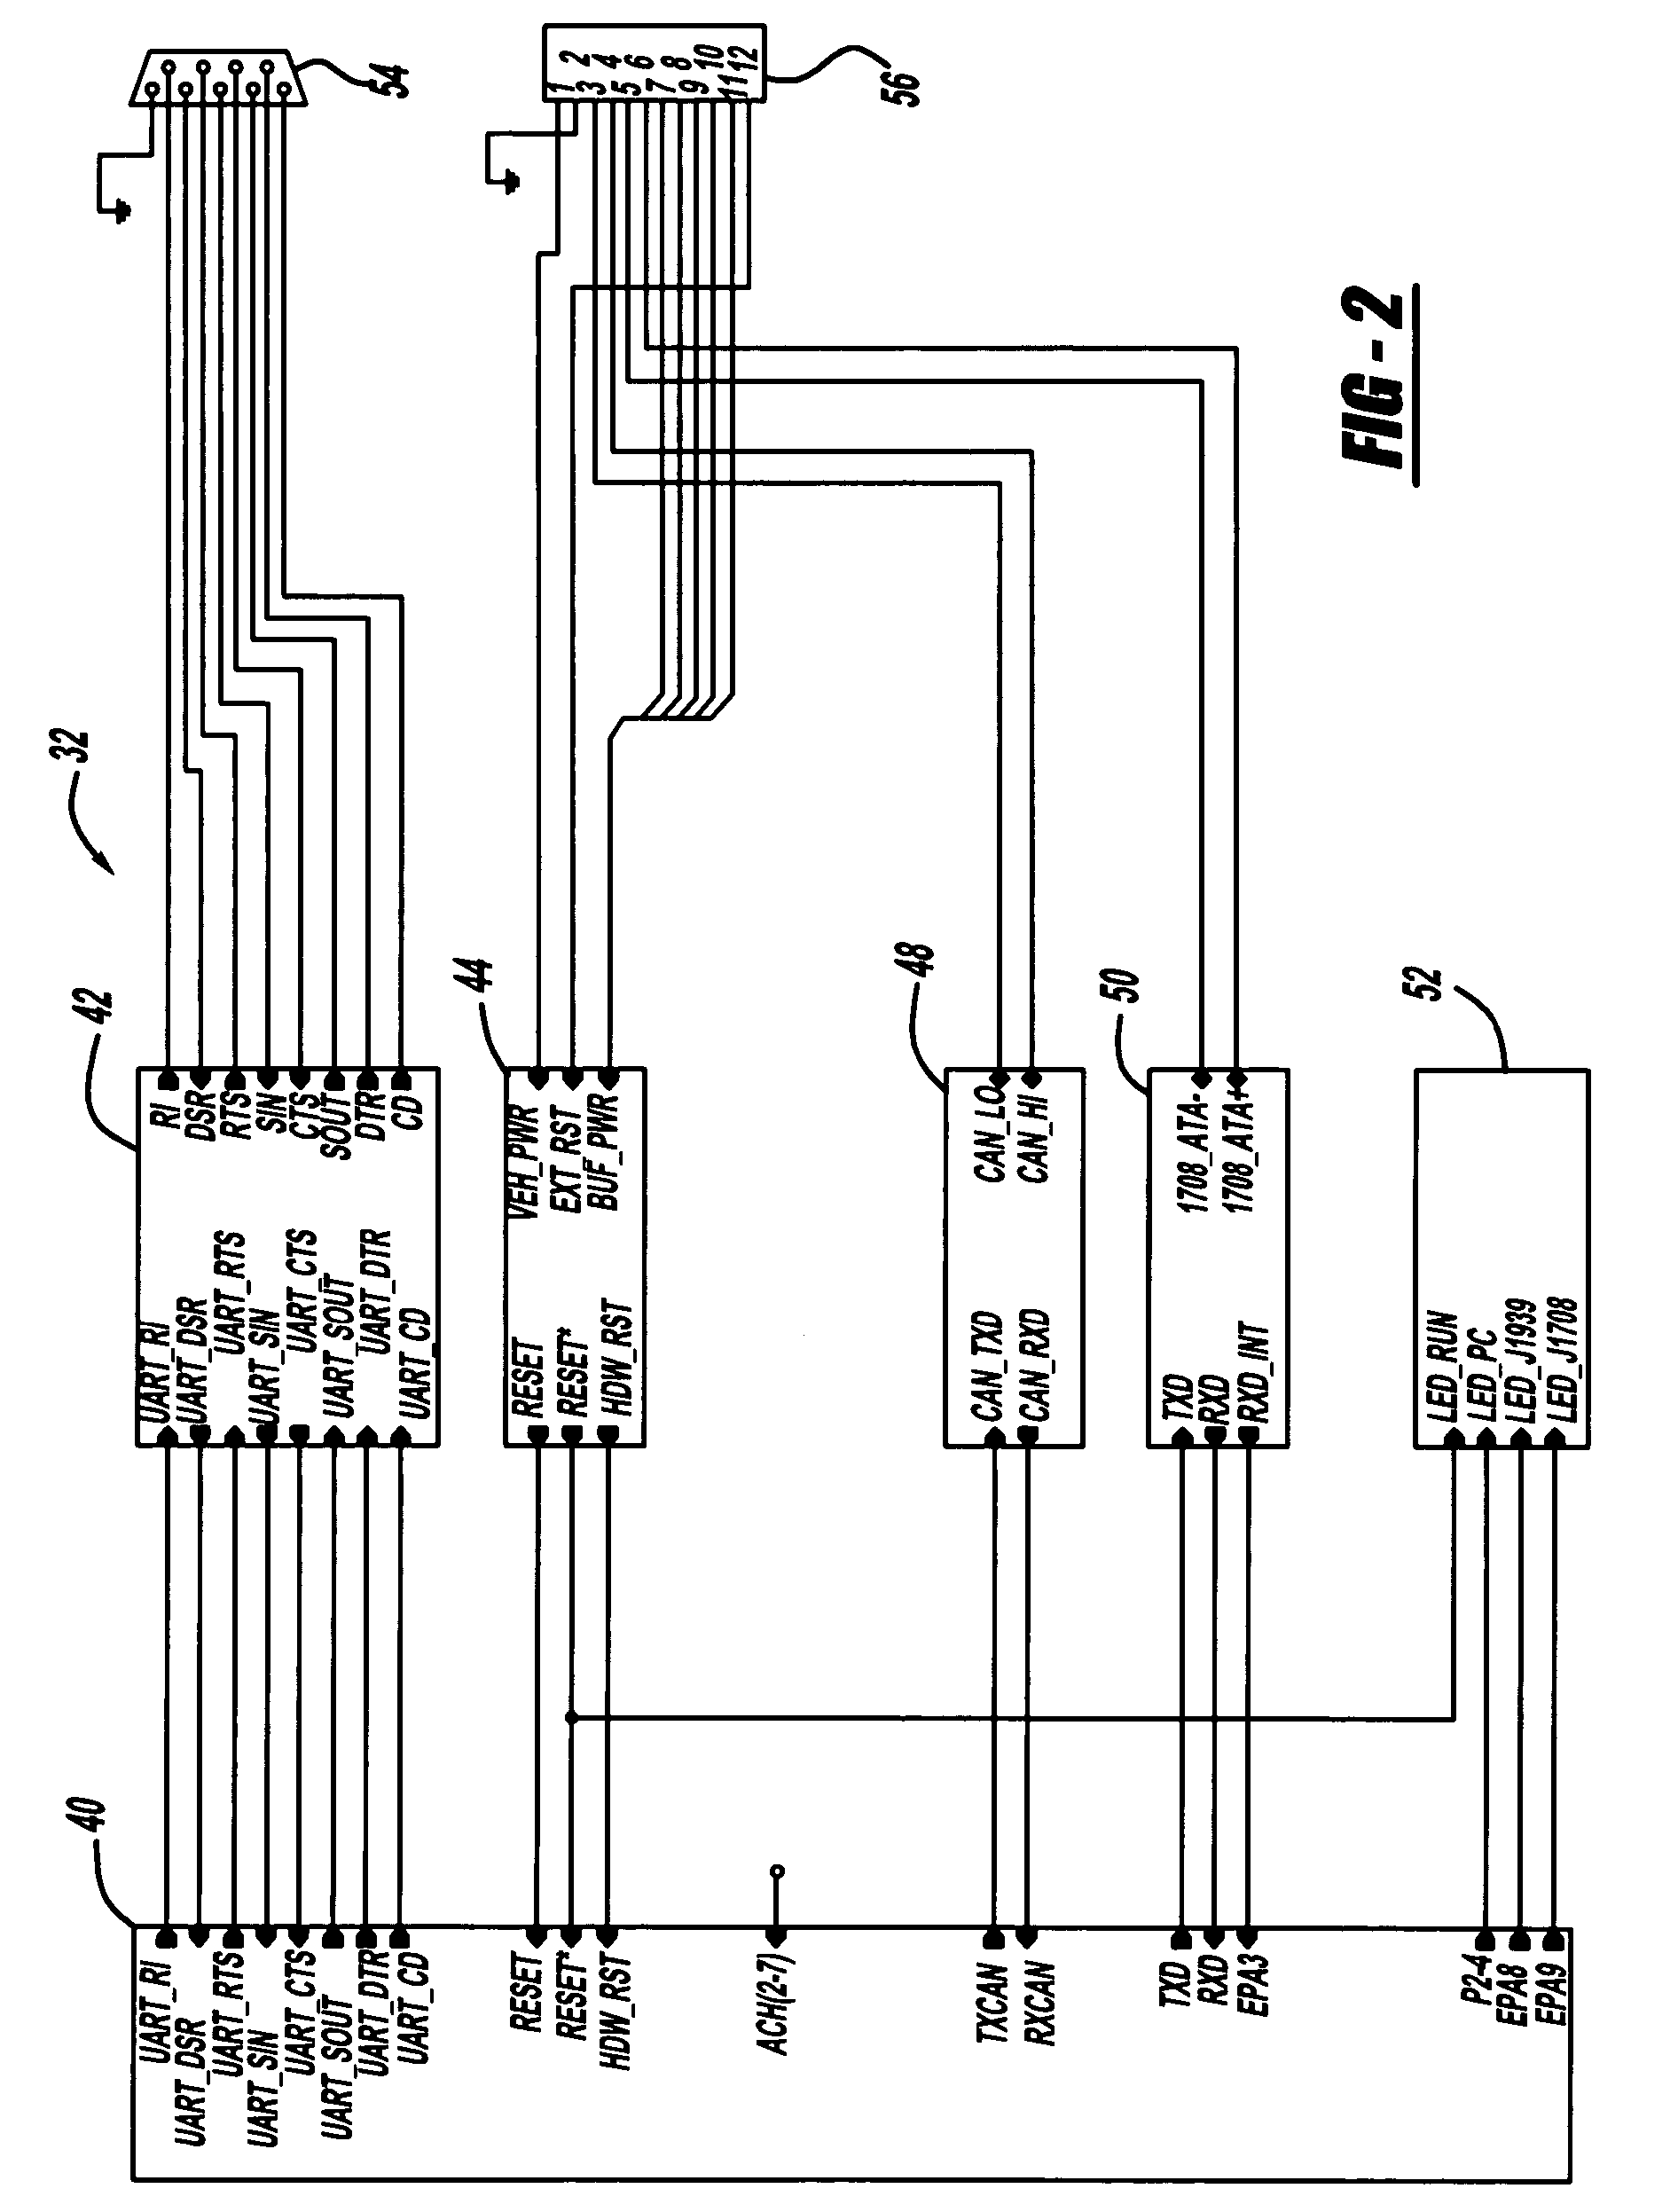 j1939 international 4700 wiring diagram